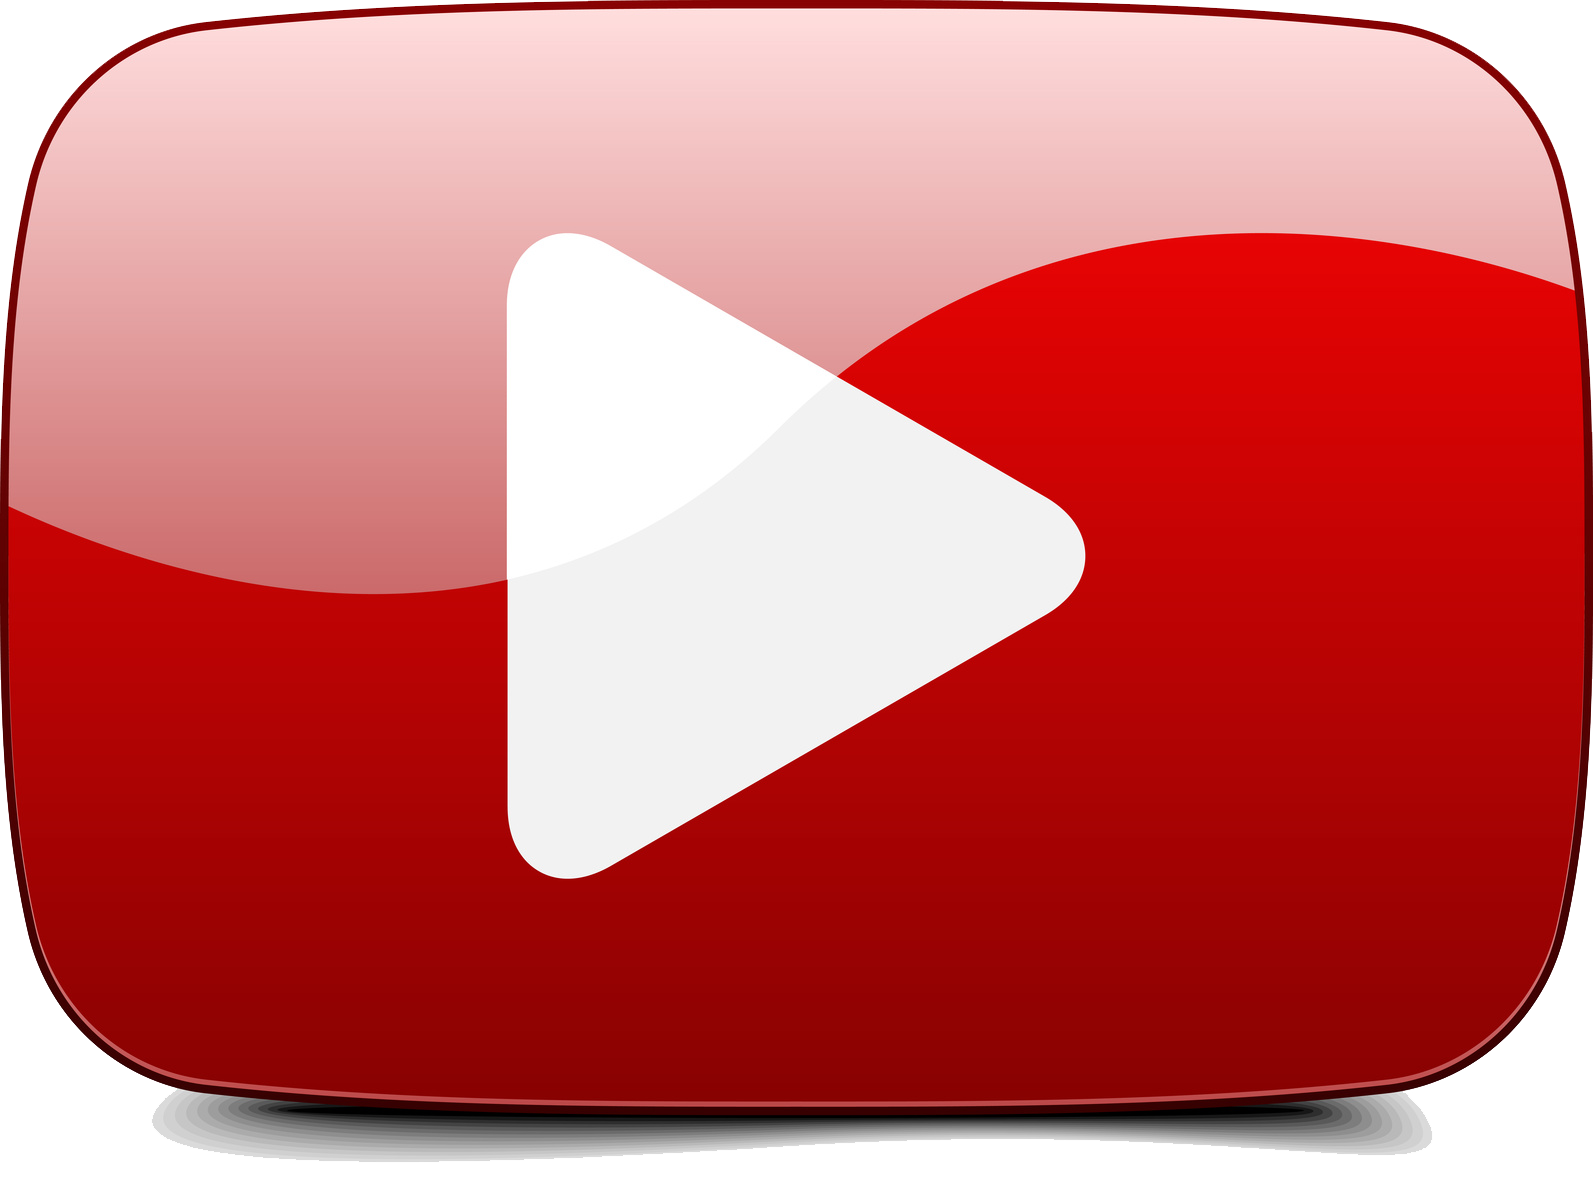 Youtube Play Button Photos PNG Image